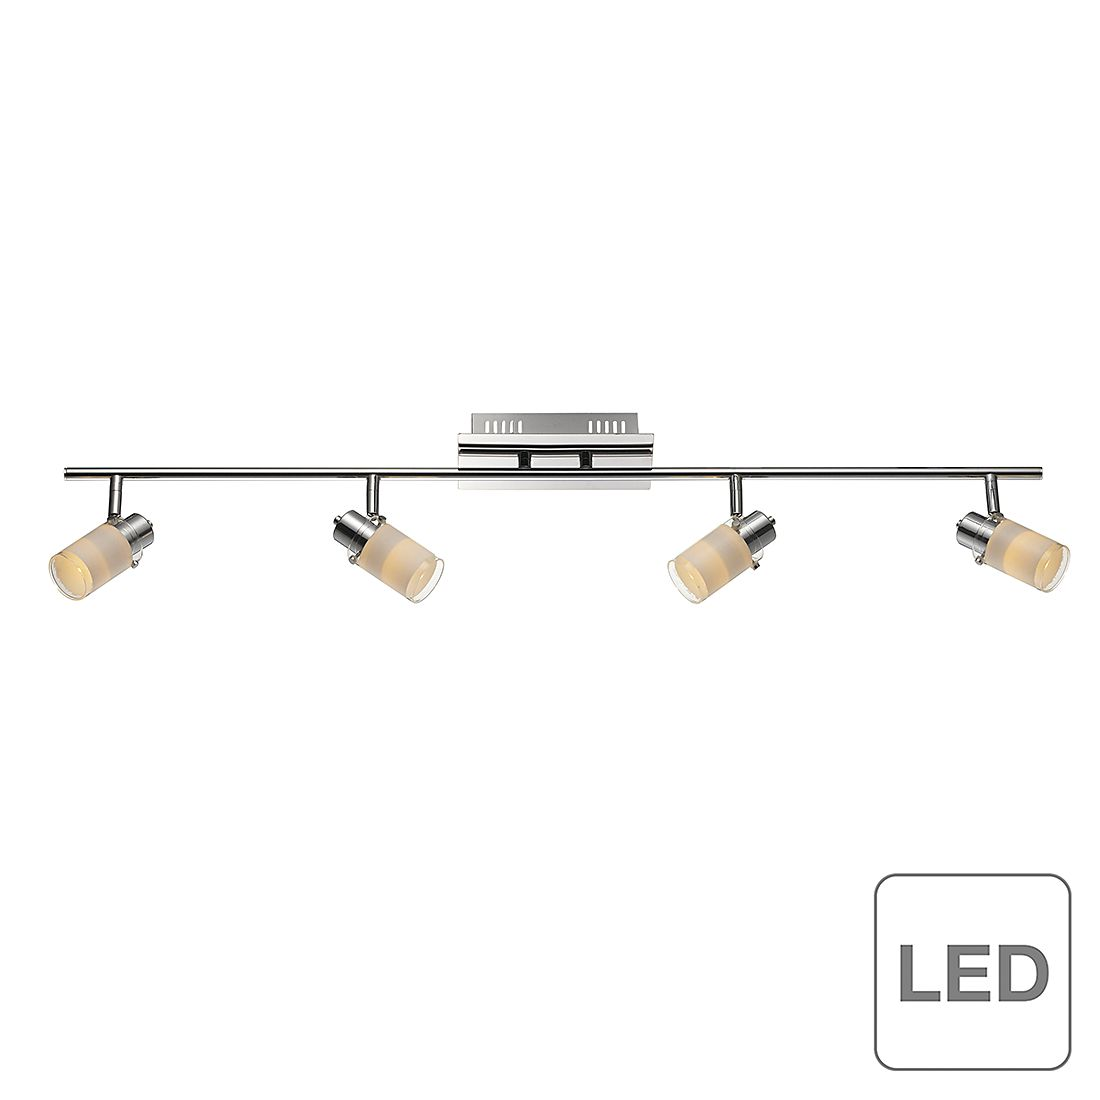 Wand- Deckenspot Lizza Led - 4-flammig, Esto